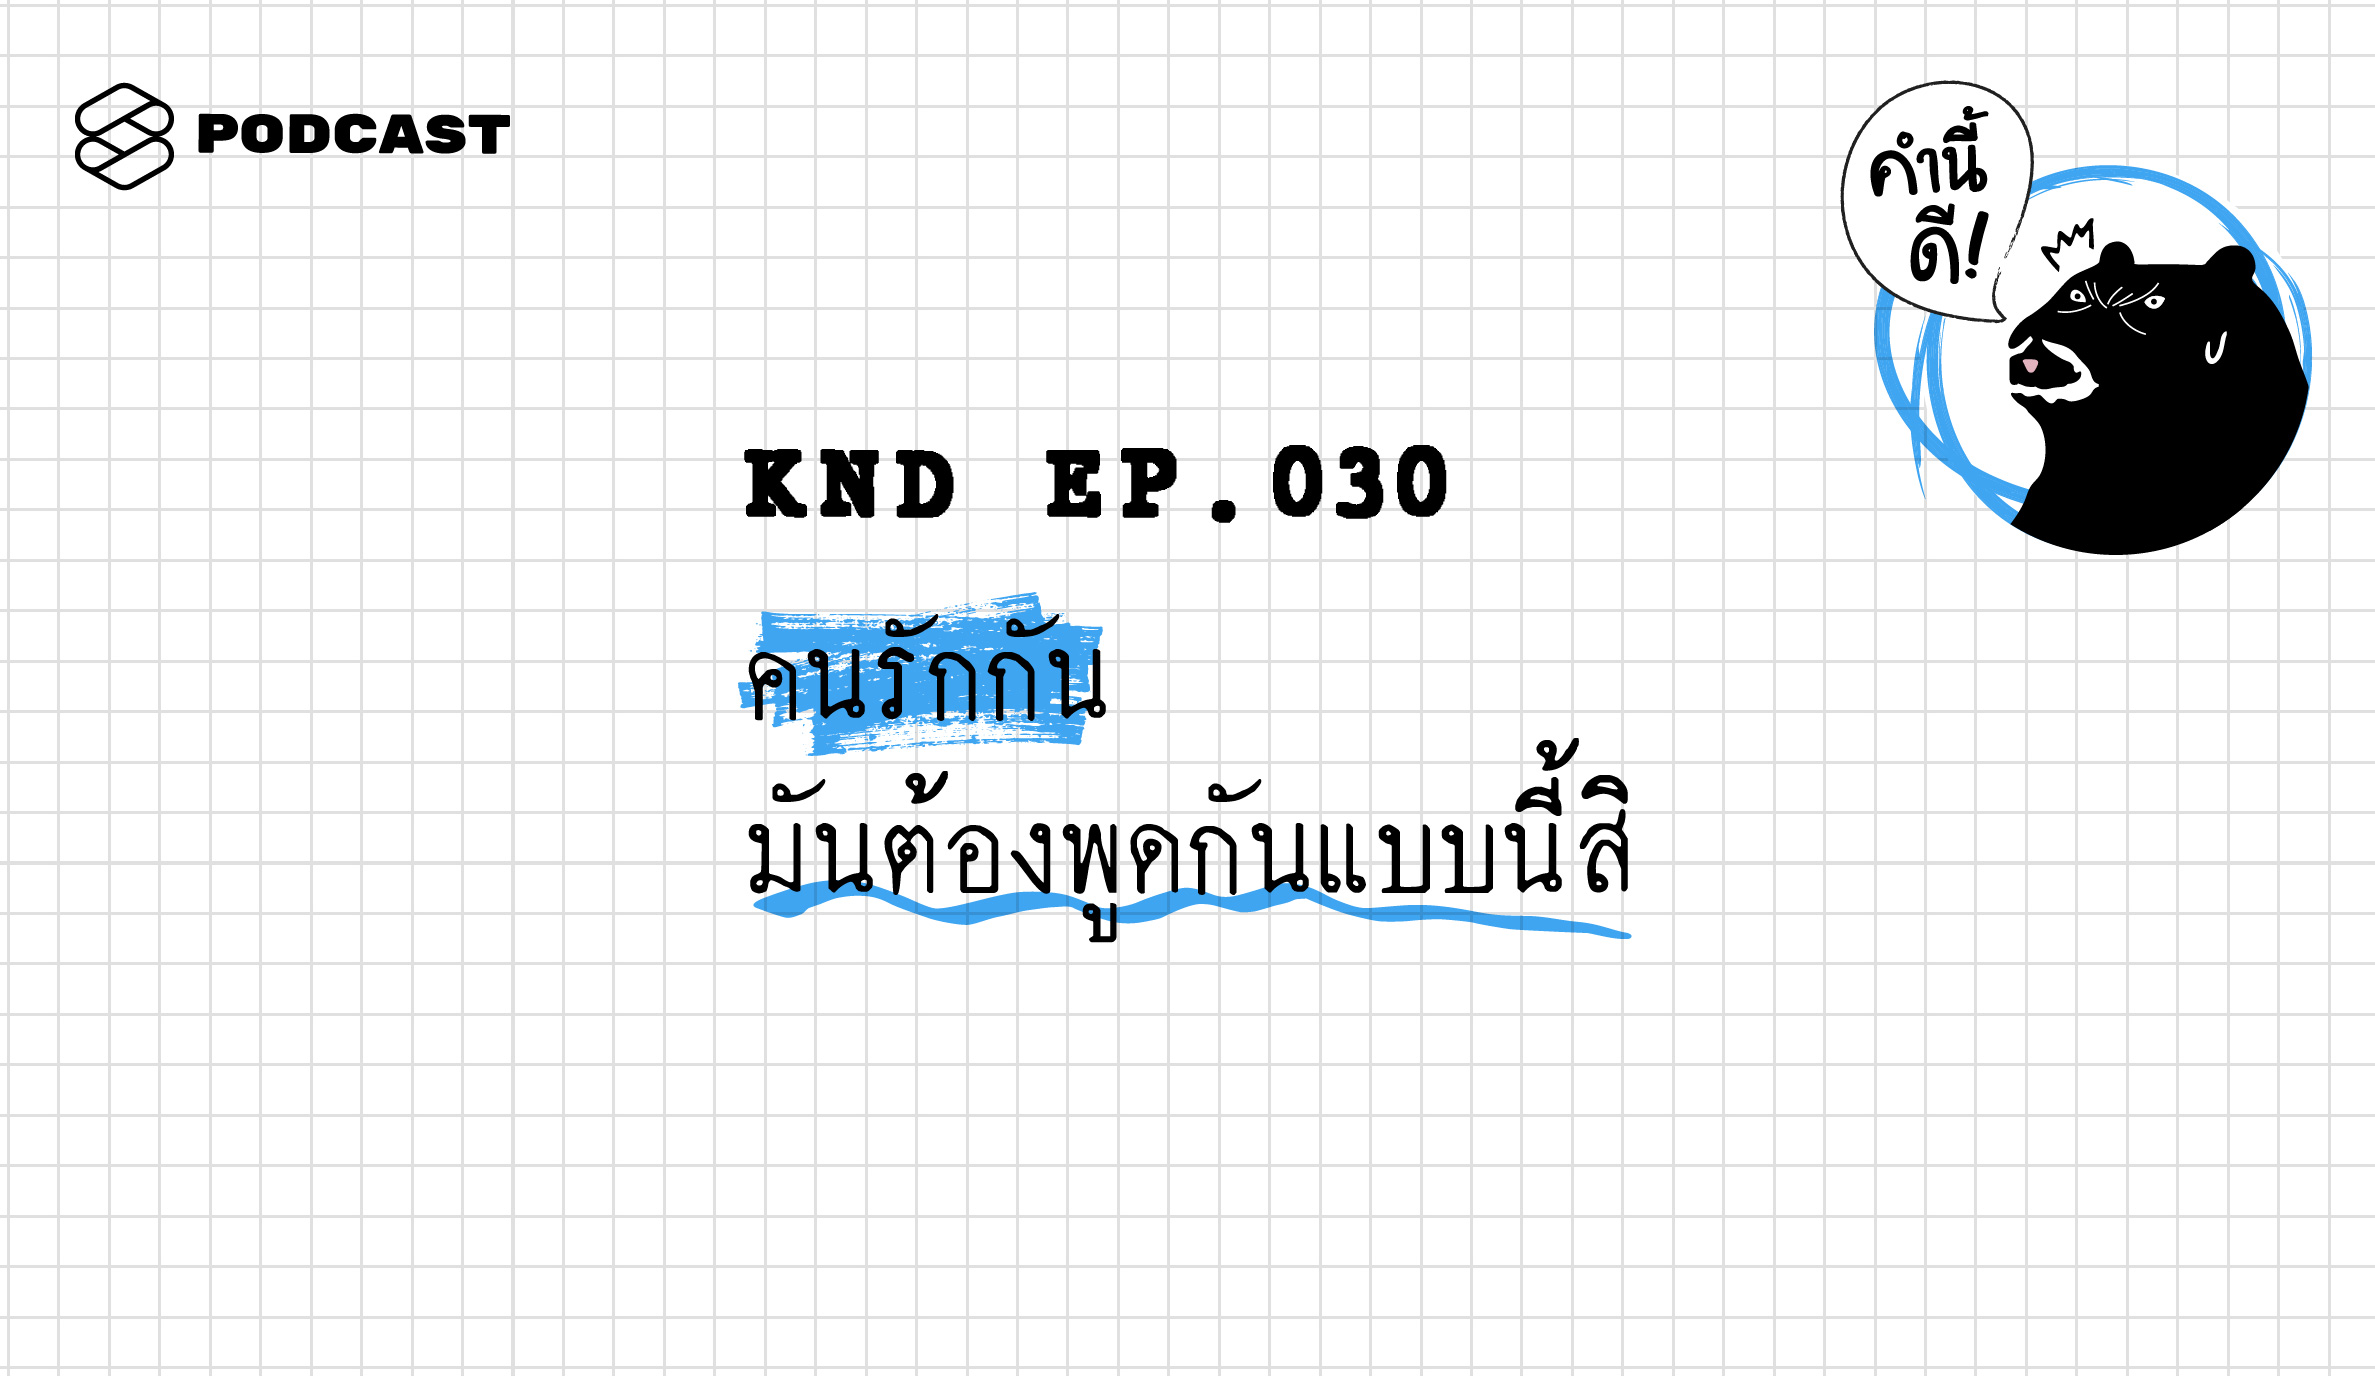 EP030 KND-1